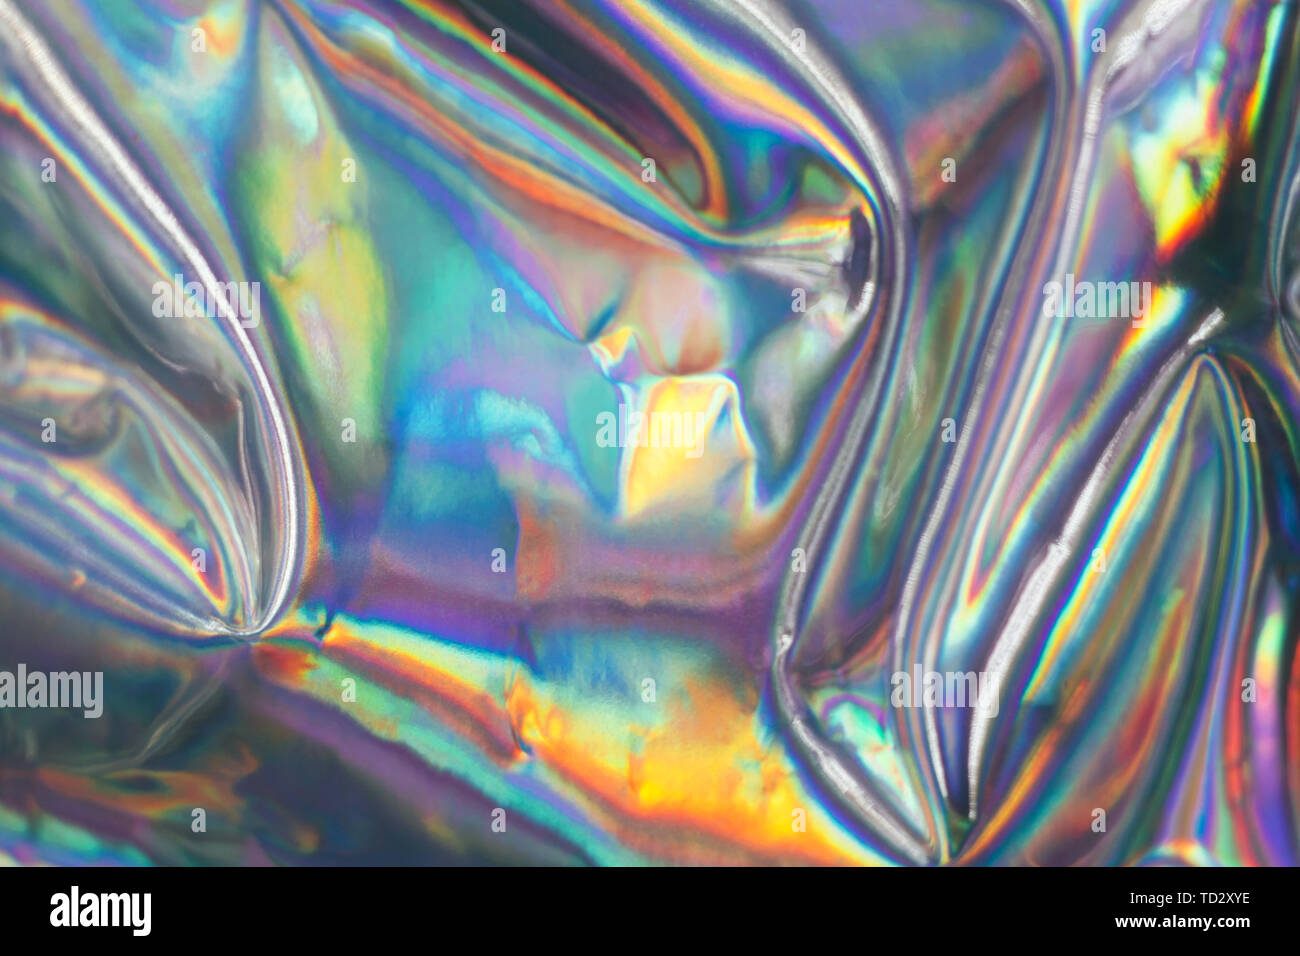 Holographic iridescent abstract blurred surface. Holographic gradient. Stock Photo